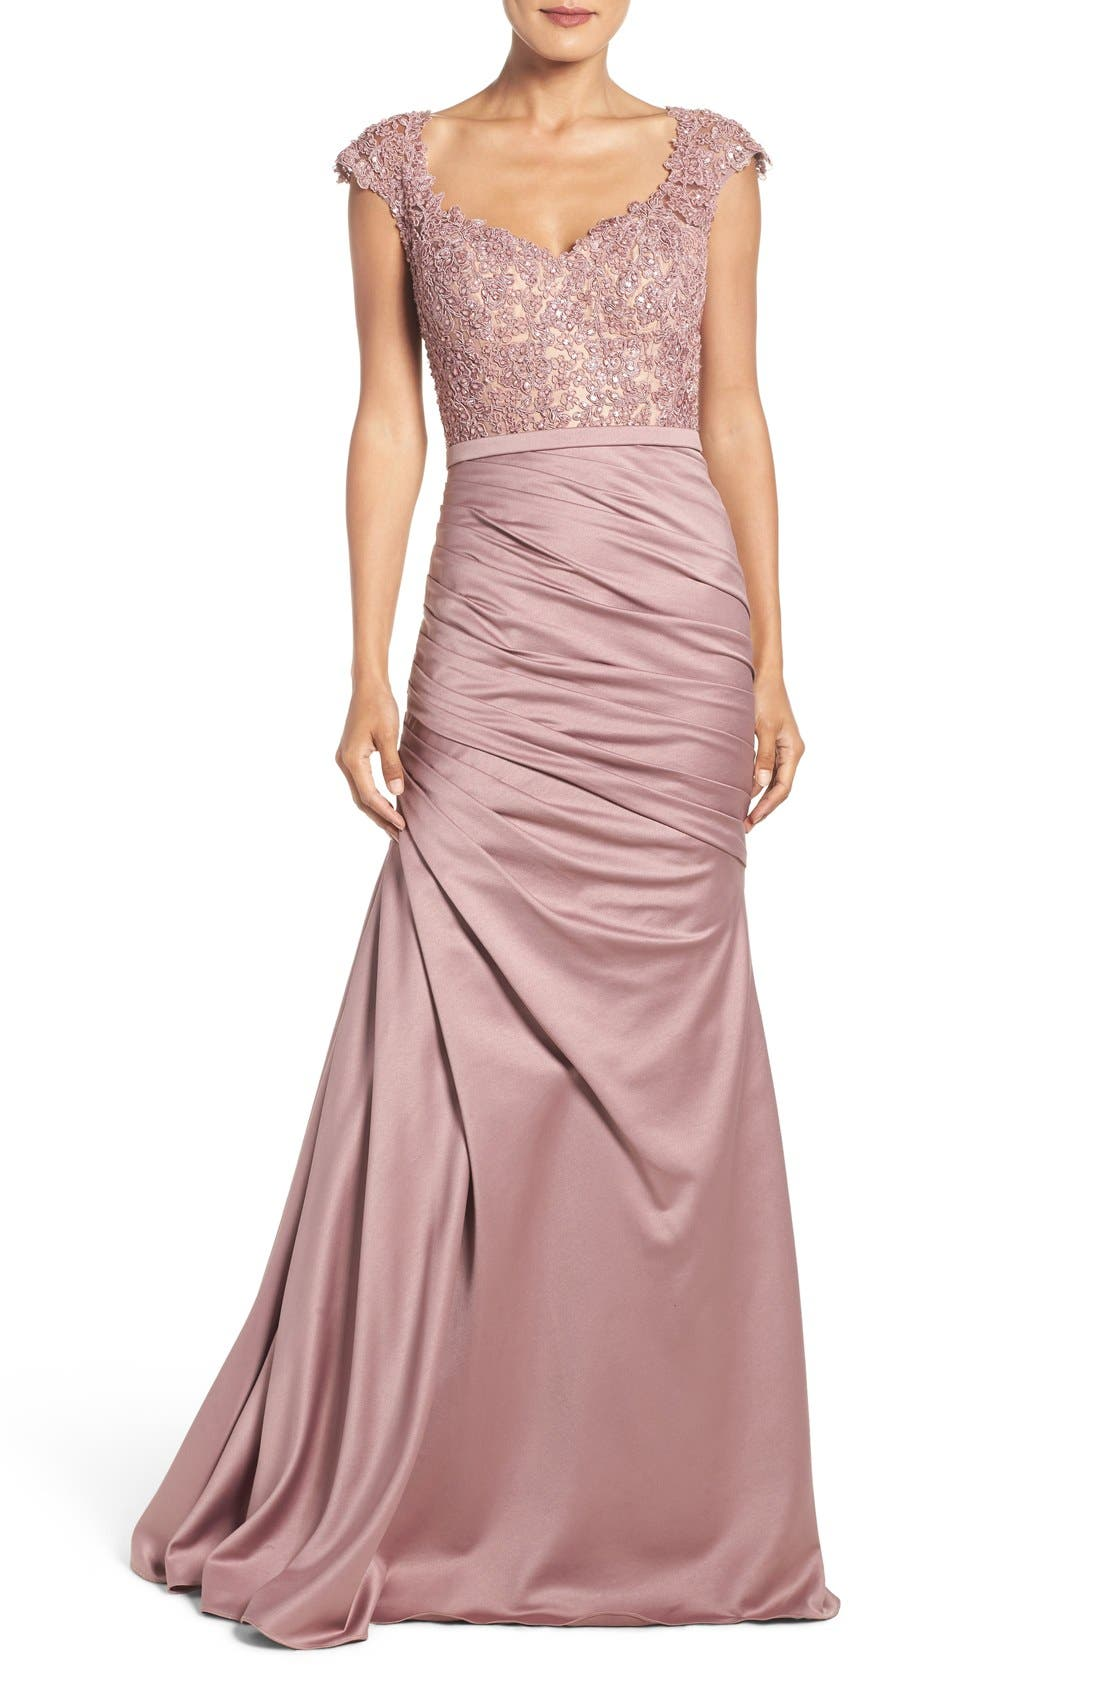 La Femme Embellished Lace & Satin Mermaid Gown, Pink